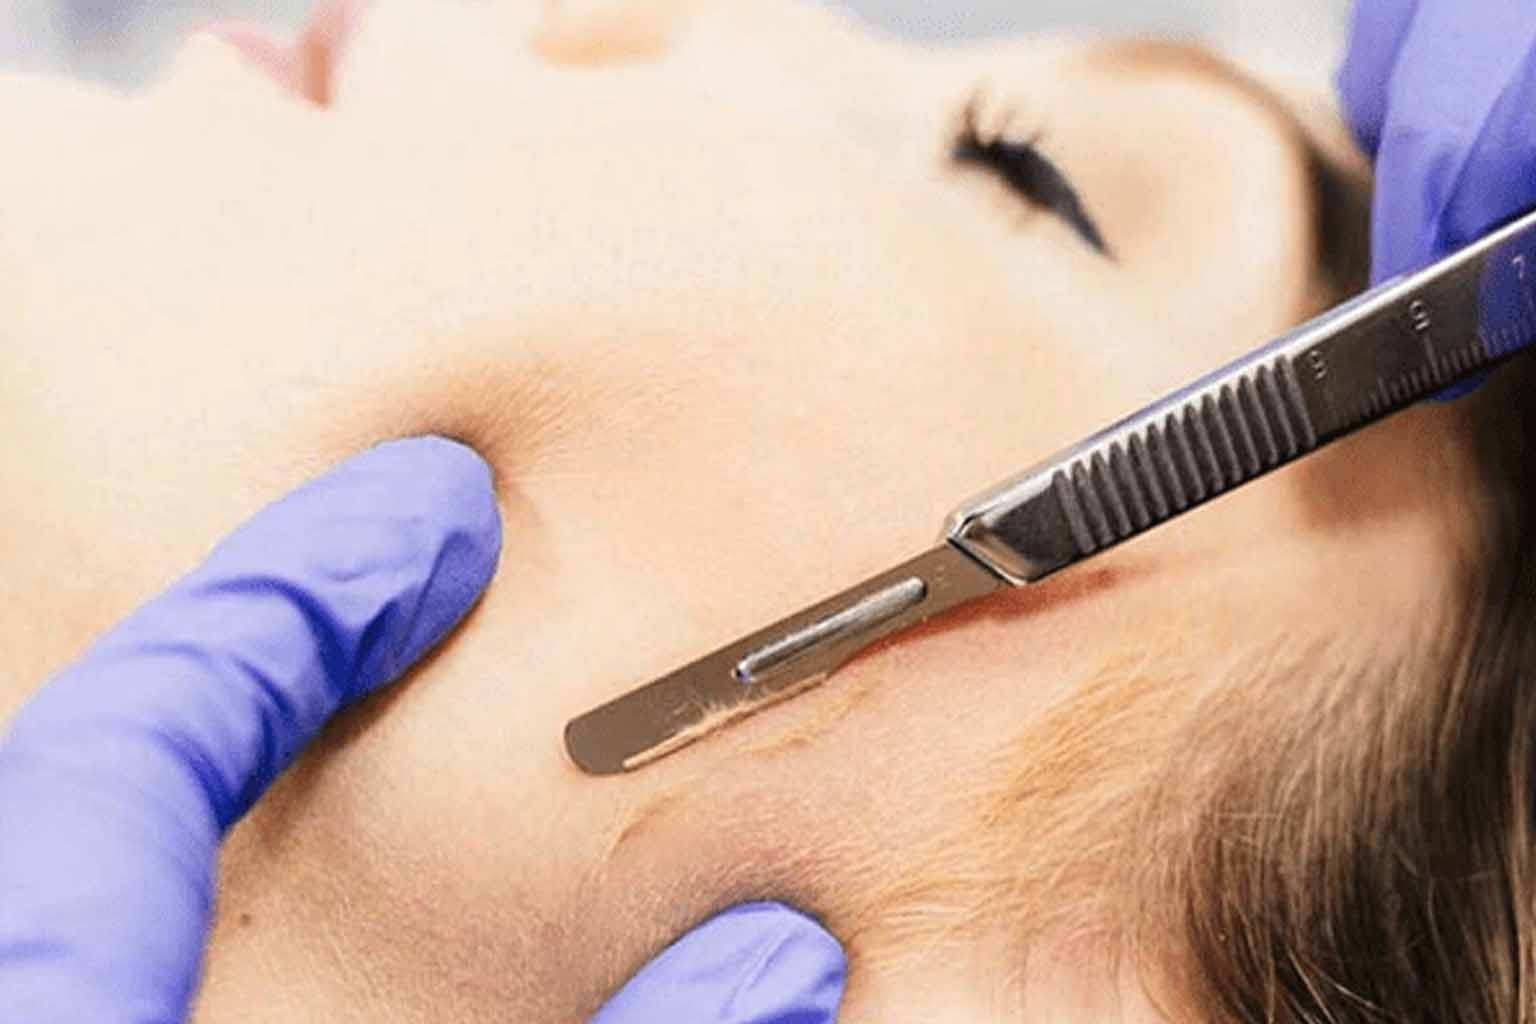 #101 Dermaplaning: The New Amazing Exfoliation Technique % - % The Voice Of Woman